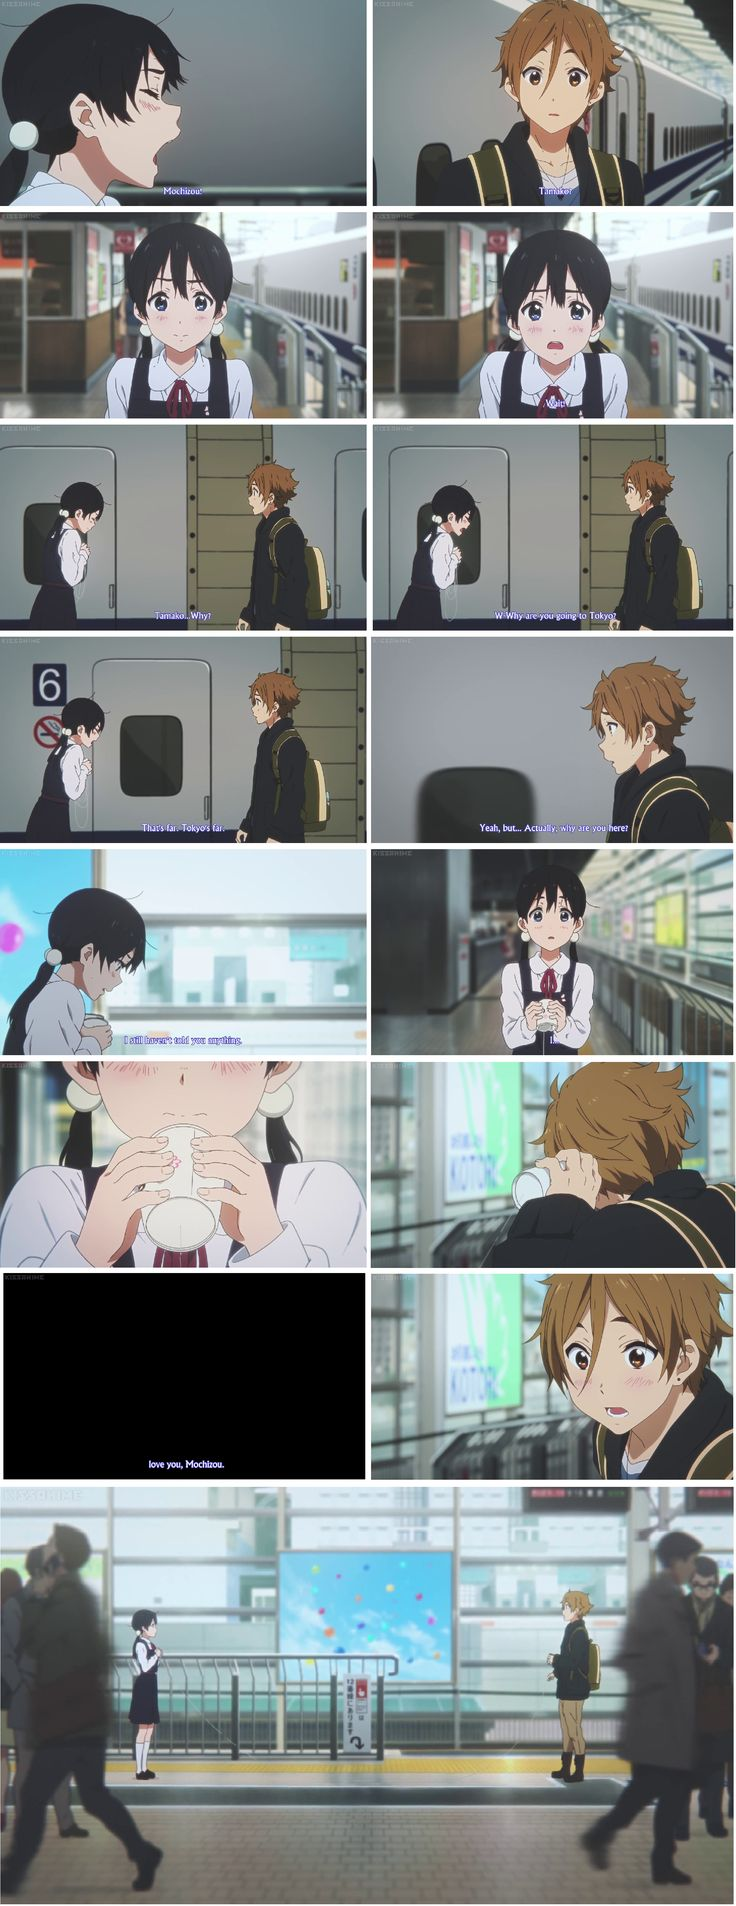 Tamako love story - series was okay but I loved the movie - perfect ending